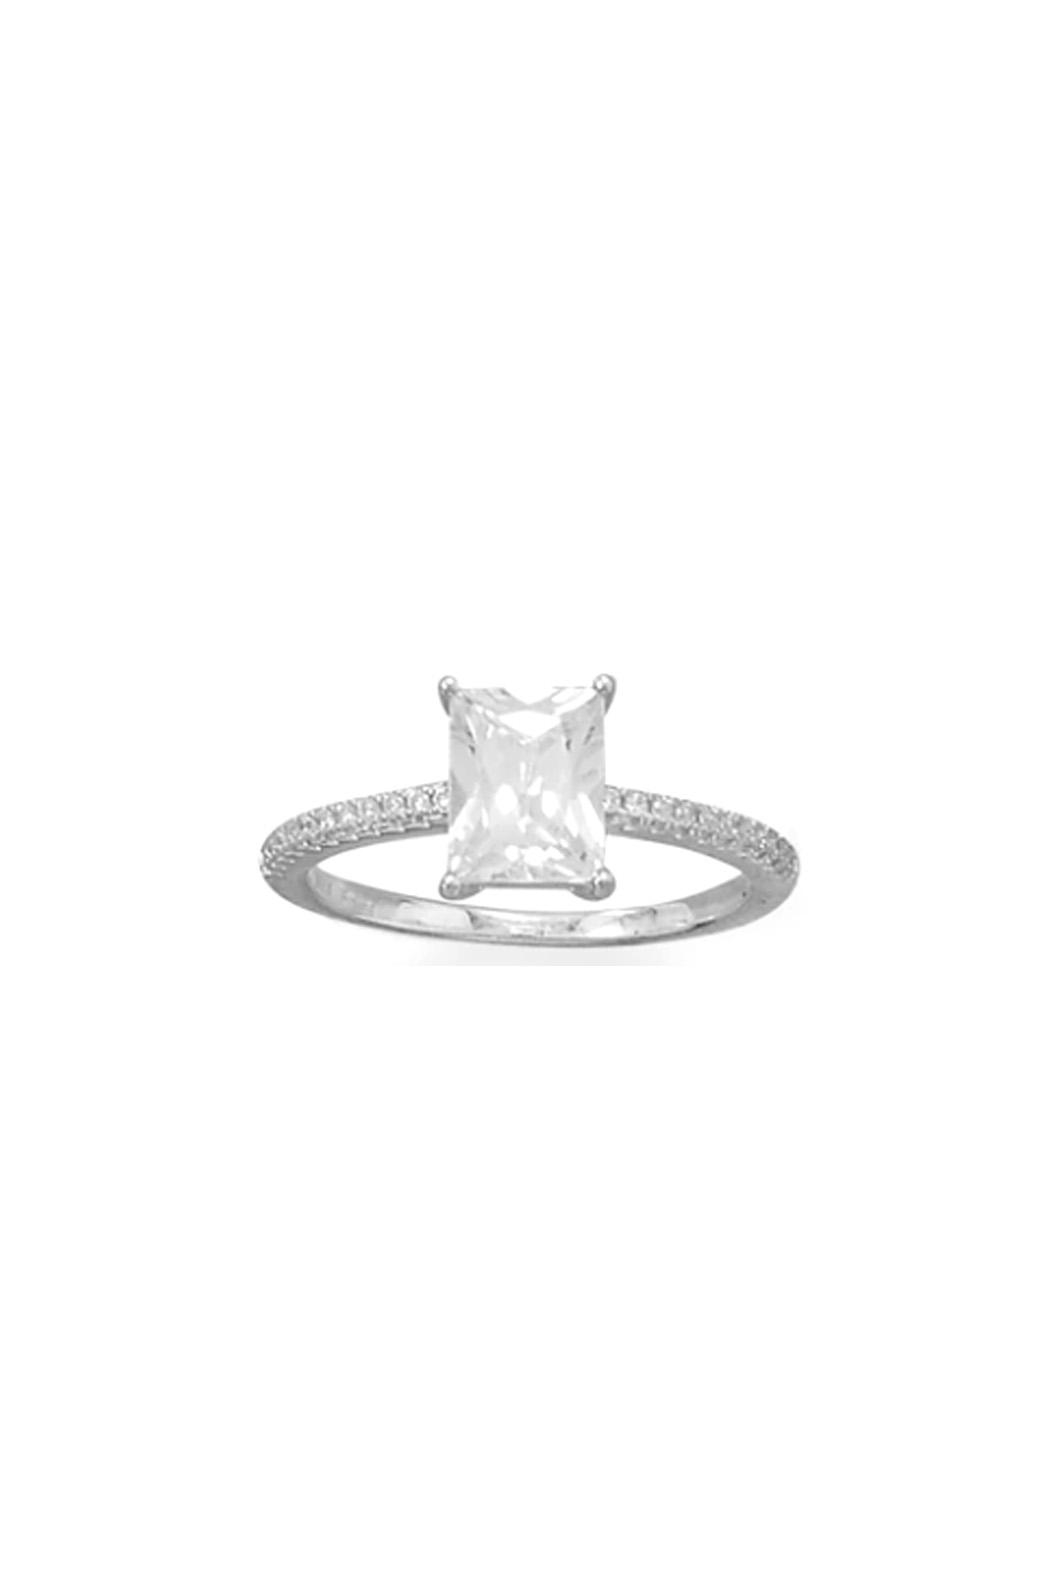 Wild Lilies Jewelry  Baguette Cz Ring - Front Full Image